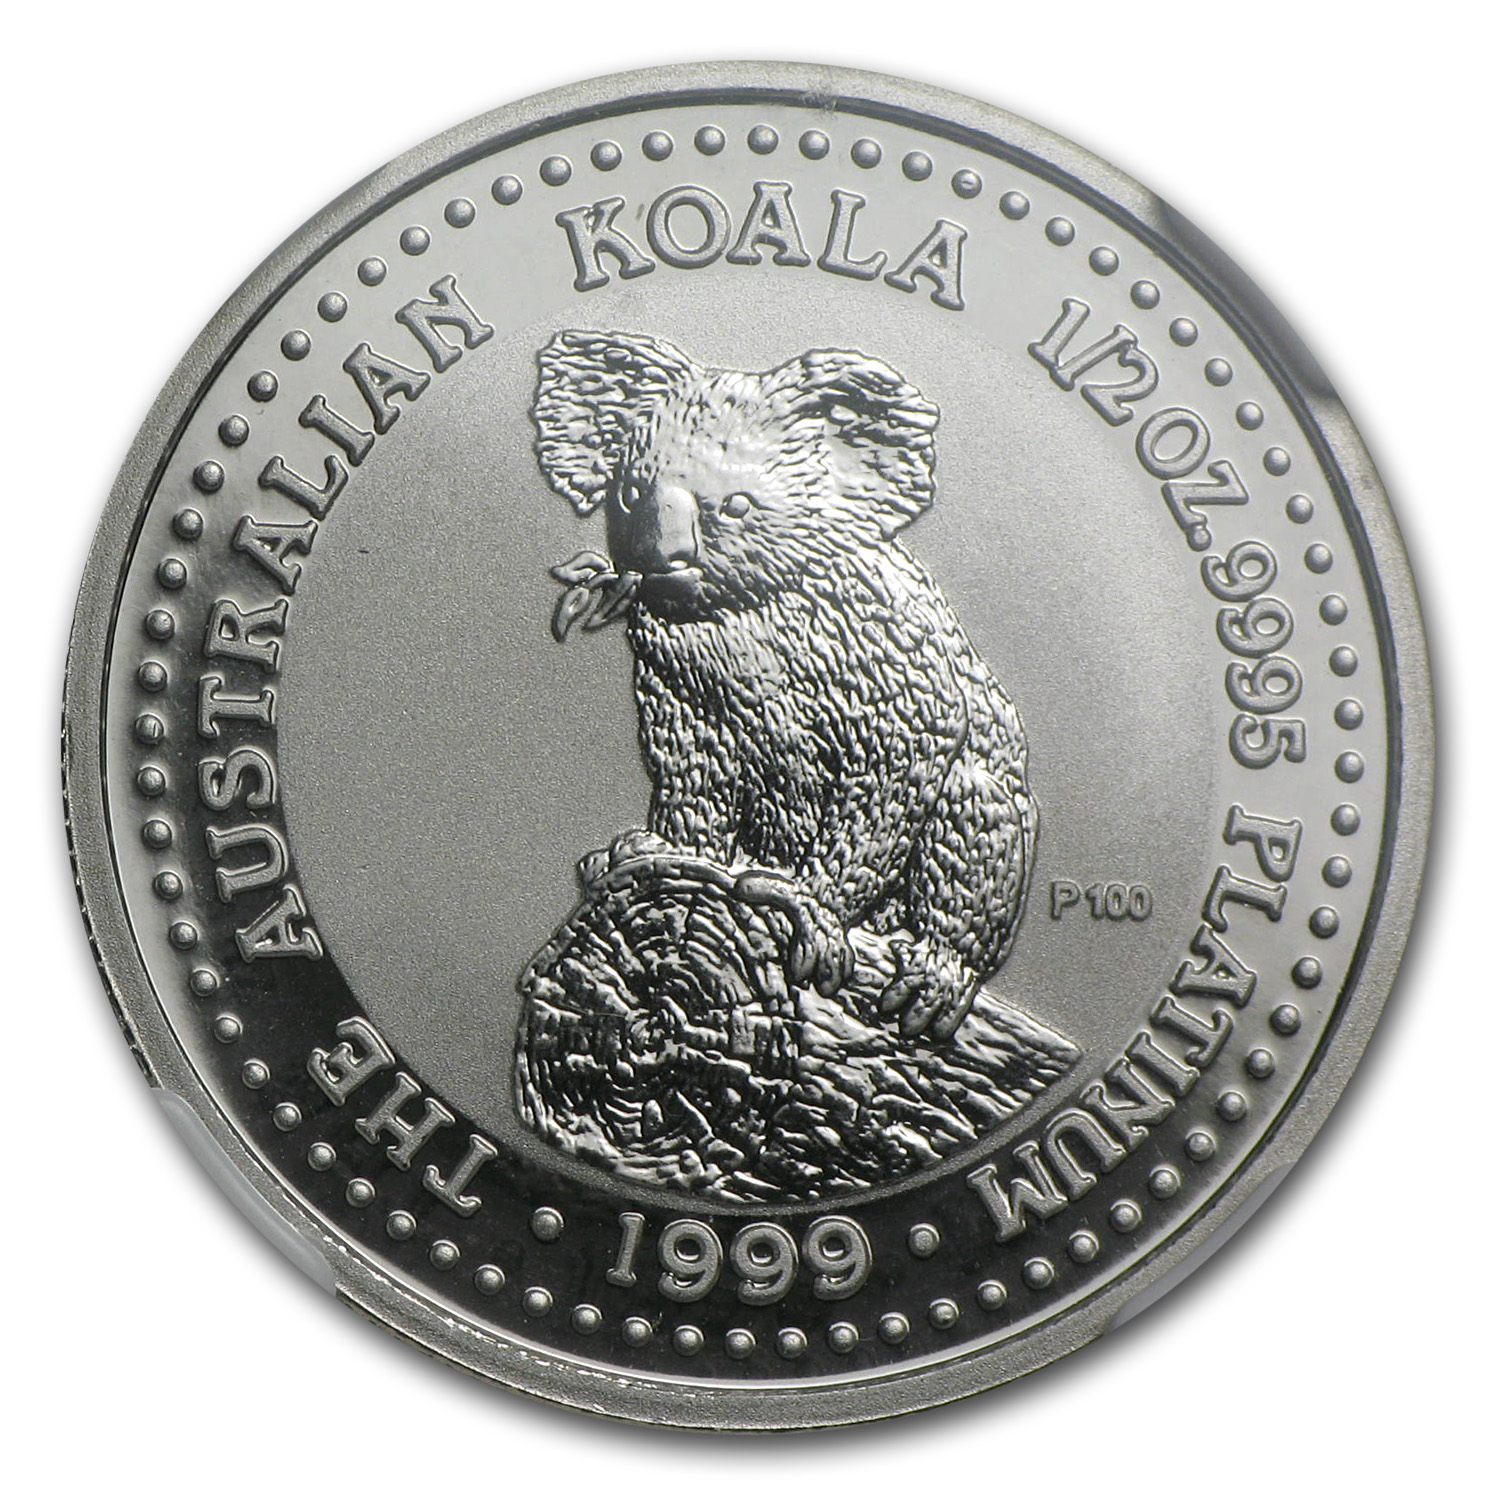 1999 1/2 oz Australian Platinum Koala MS-70 (Registry Set)